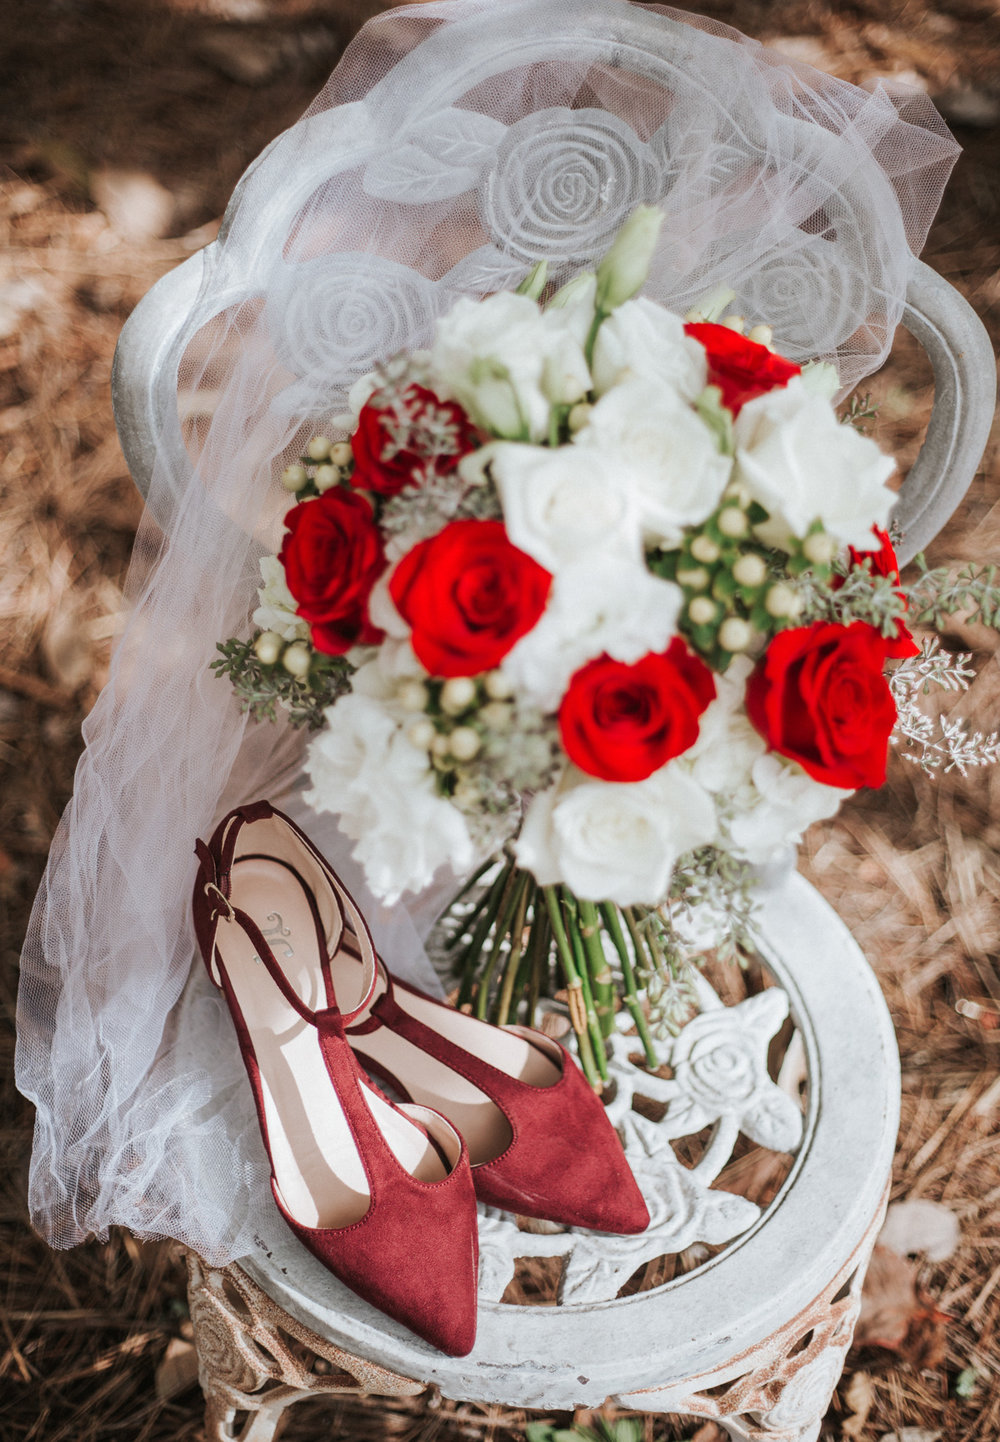 Bridal Shoes, Veil, and bouquet, Wedding Details  by Greensboro Winston-Salem Photographer | Kayli LaFon Photography